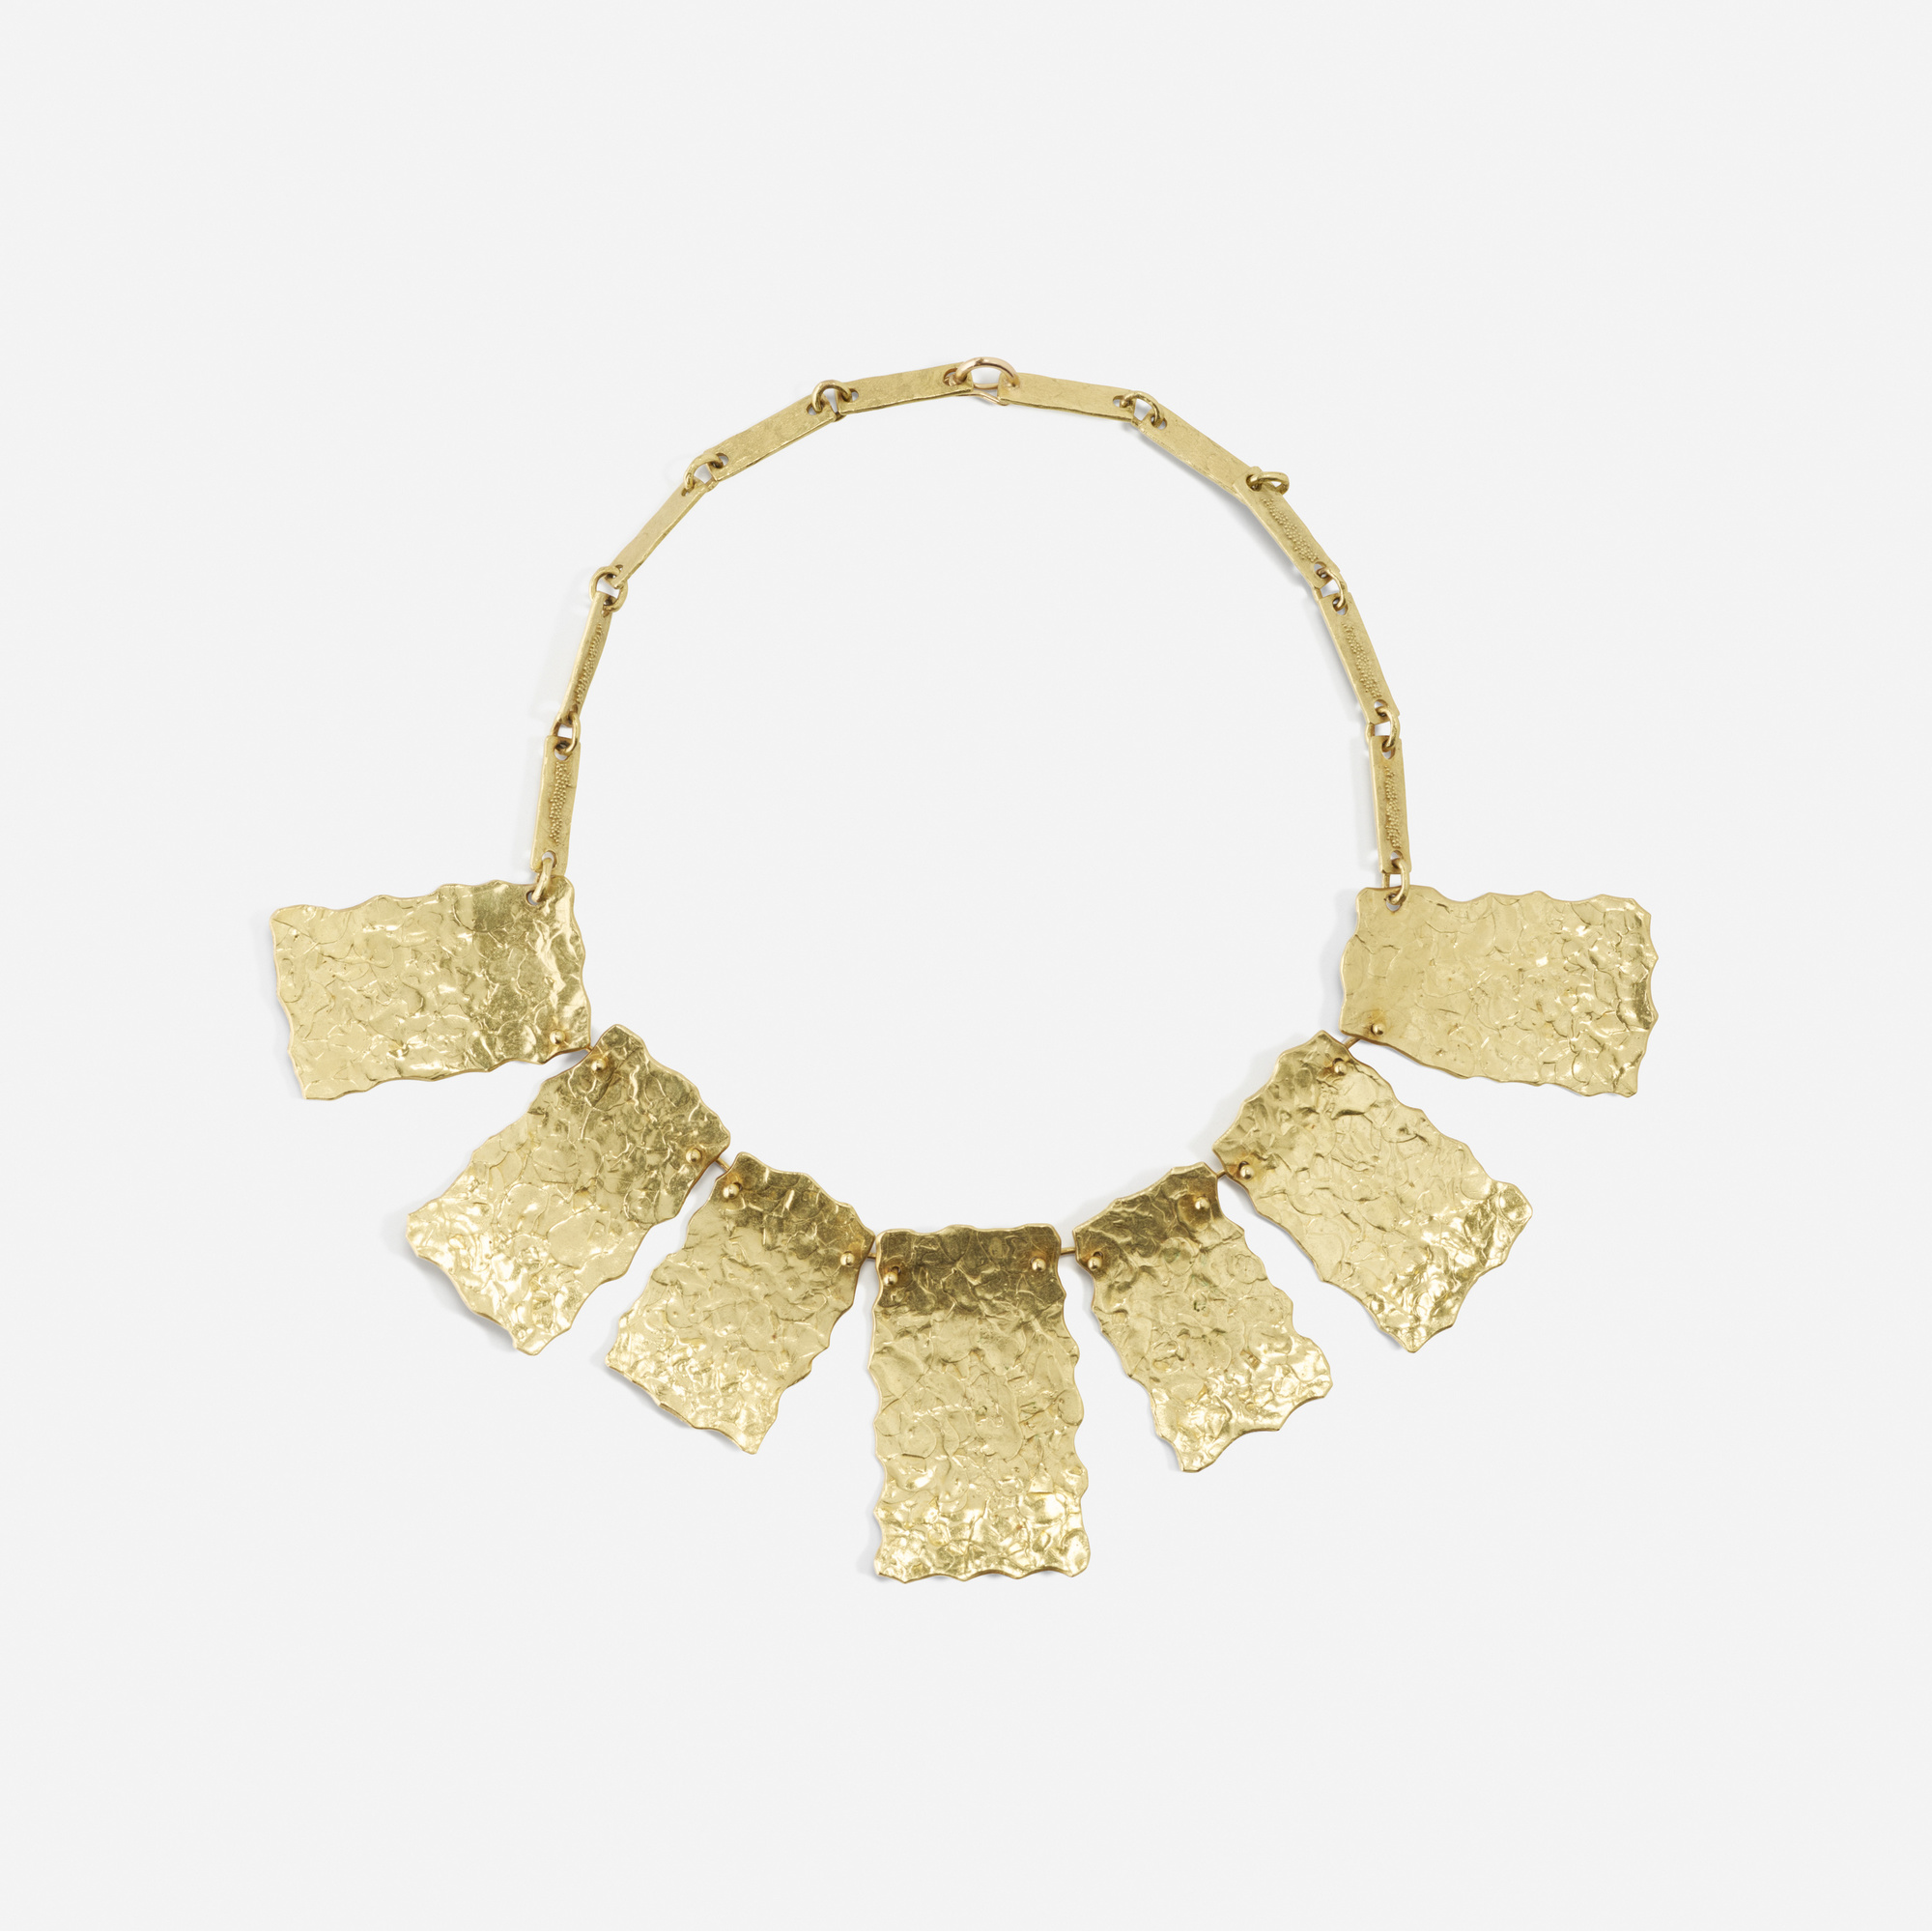 106: Ed Wiener / A custom gold necklace (1 of 1)